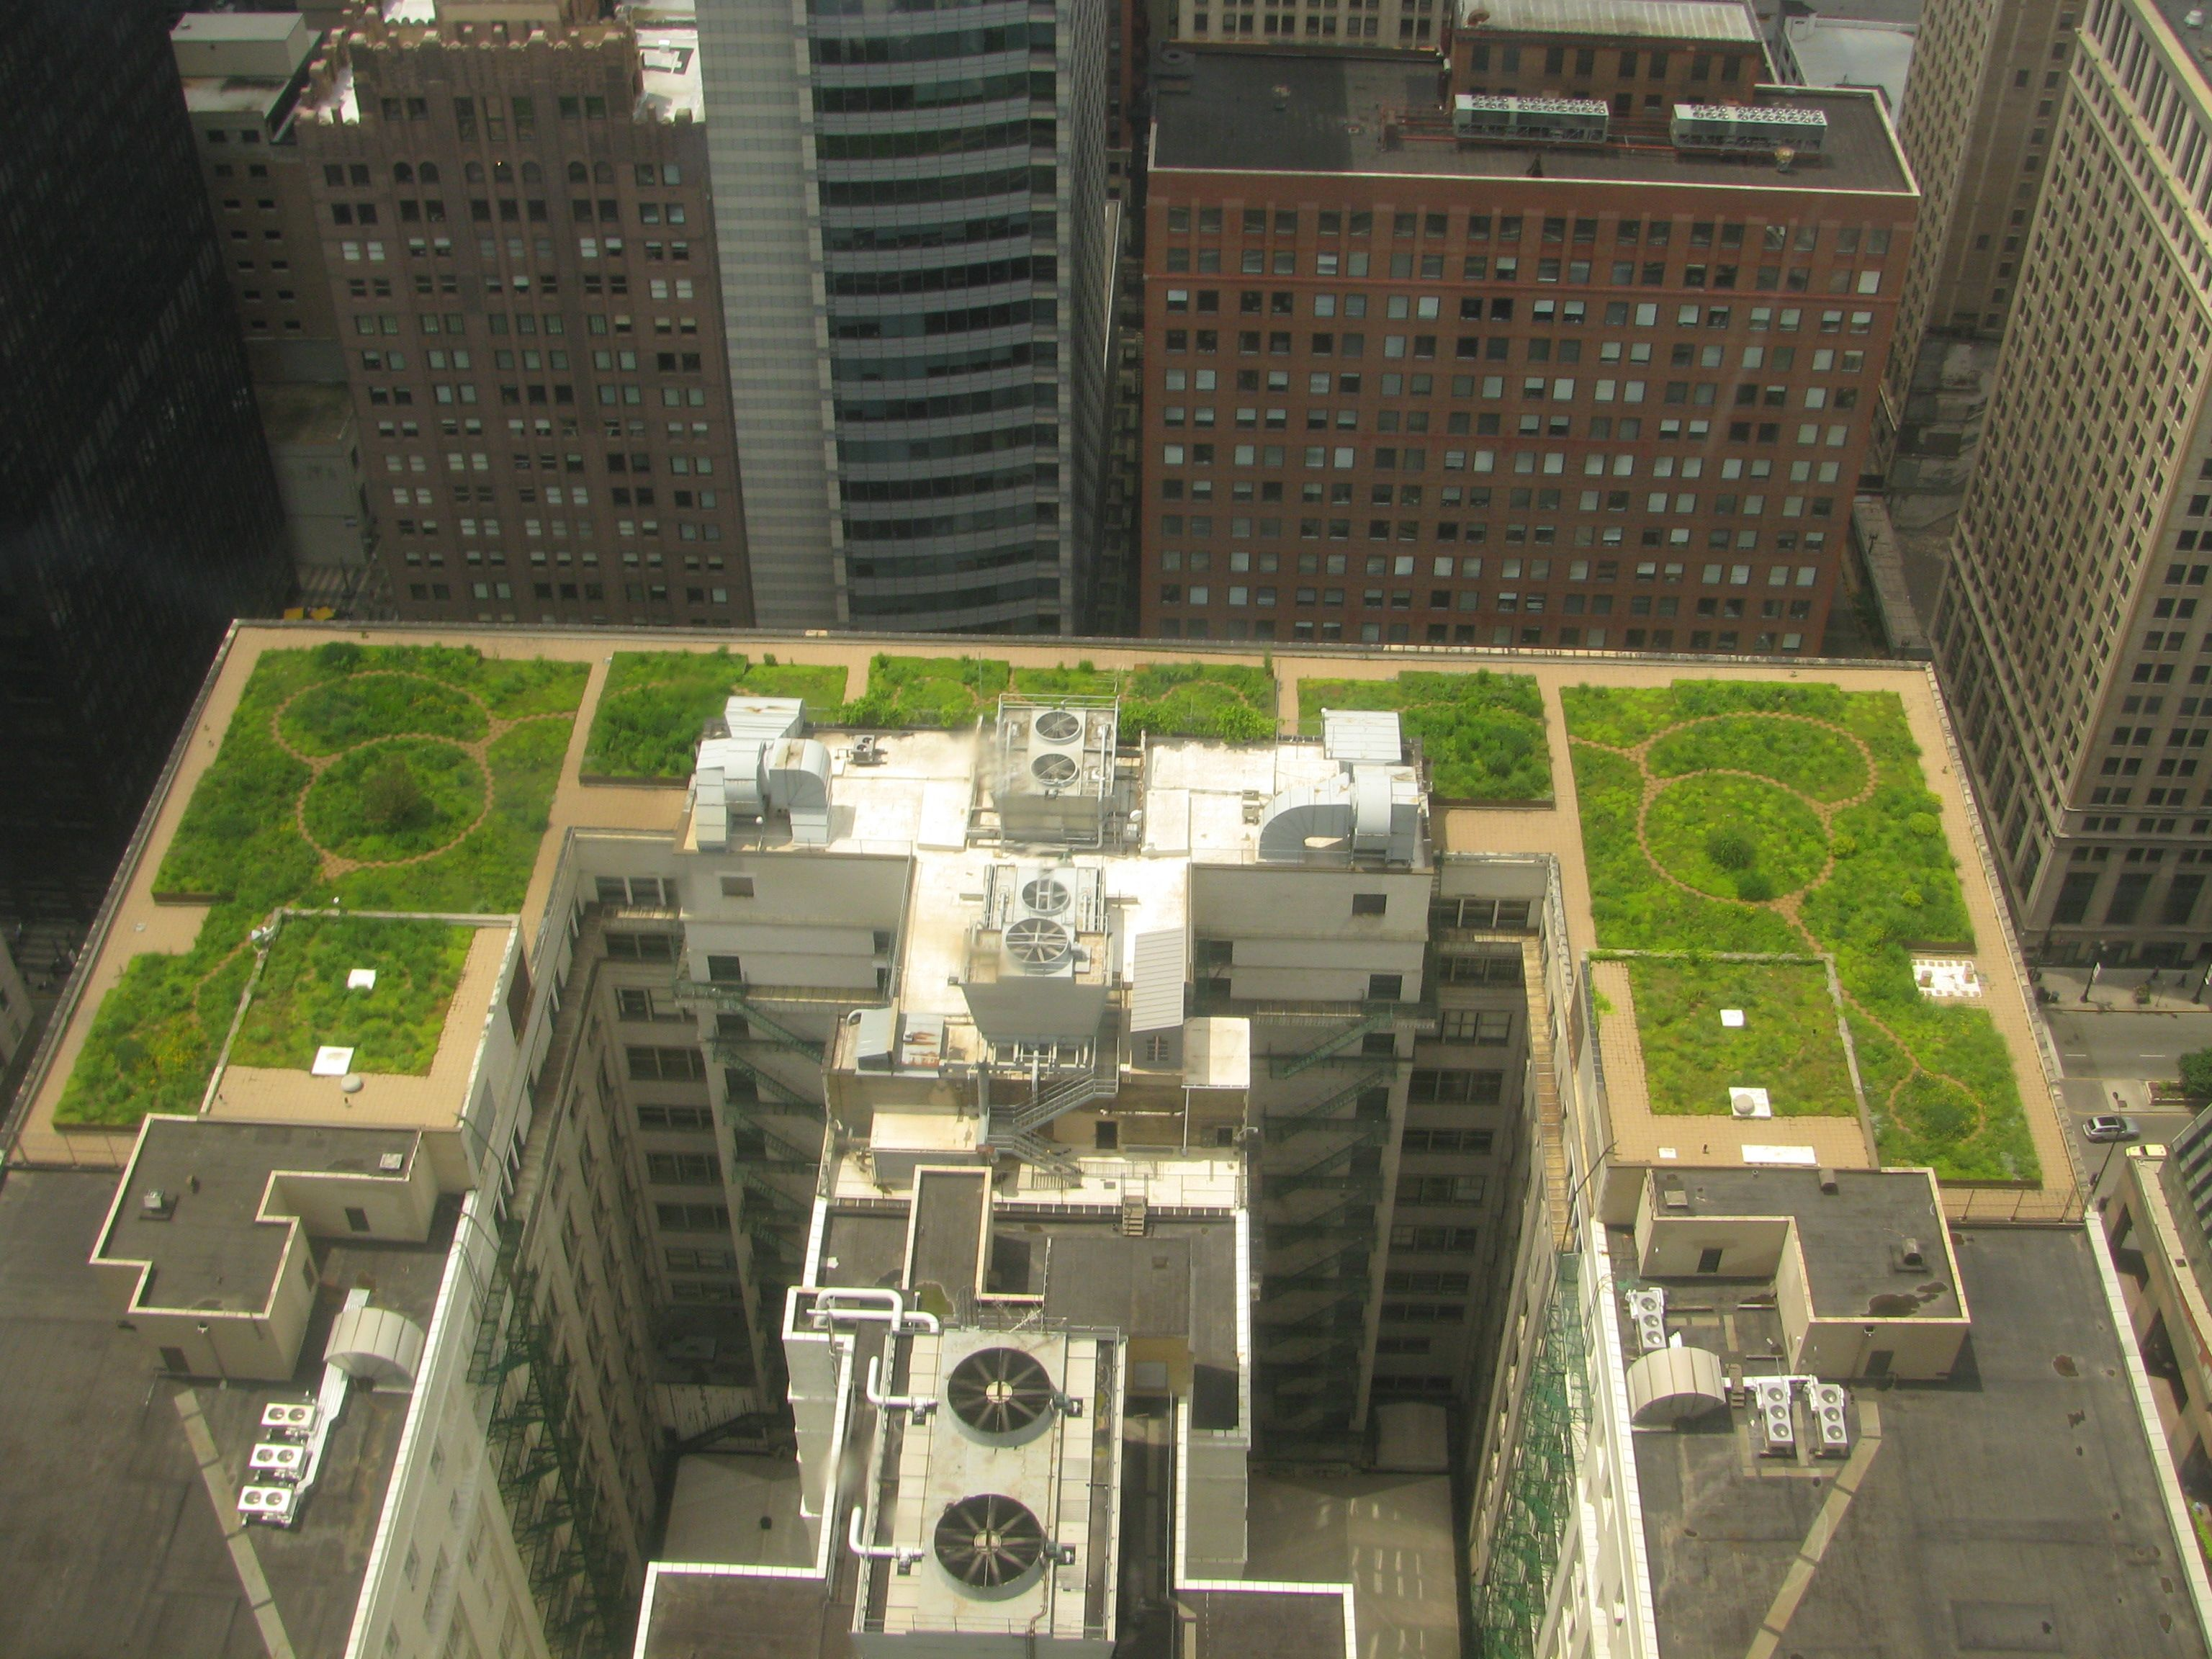 Green Roof Garden Trees And Flowers Pinterest Green Roofs